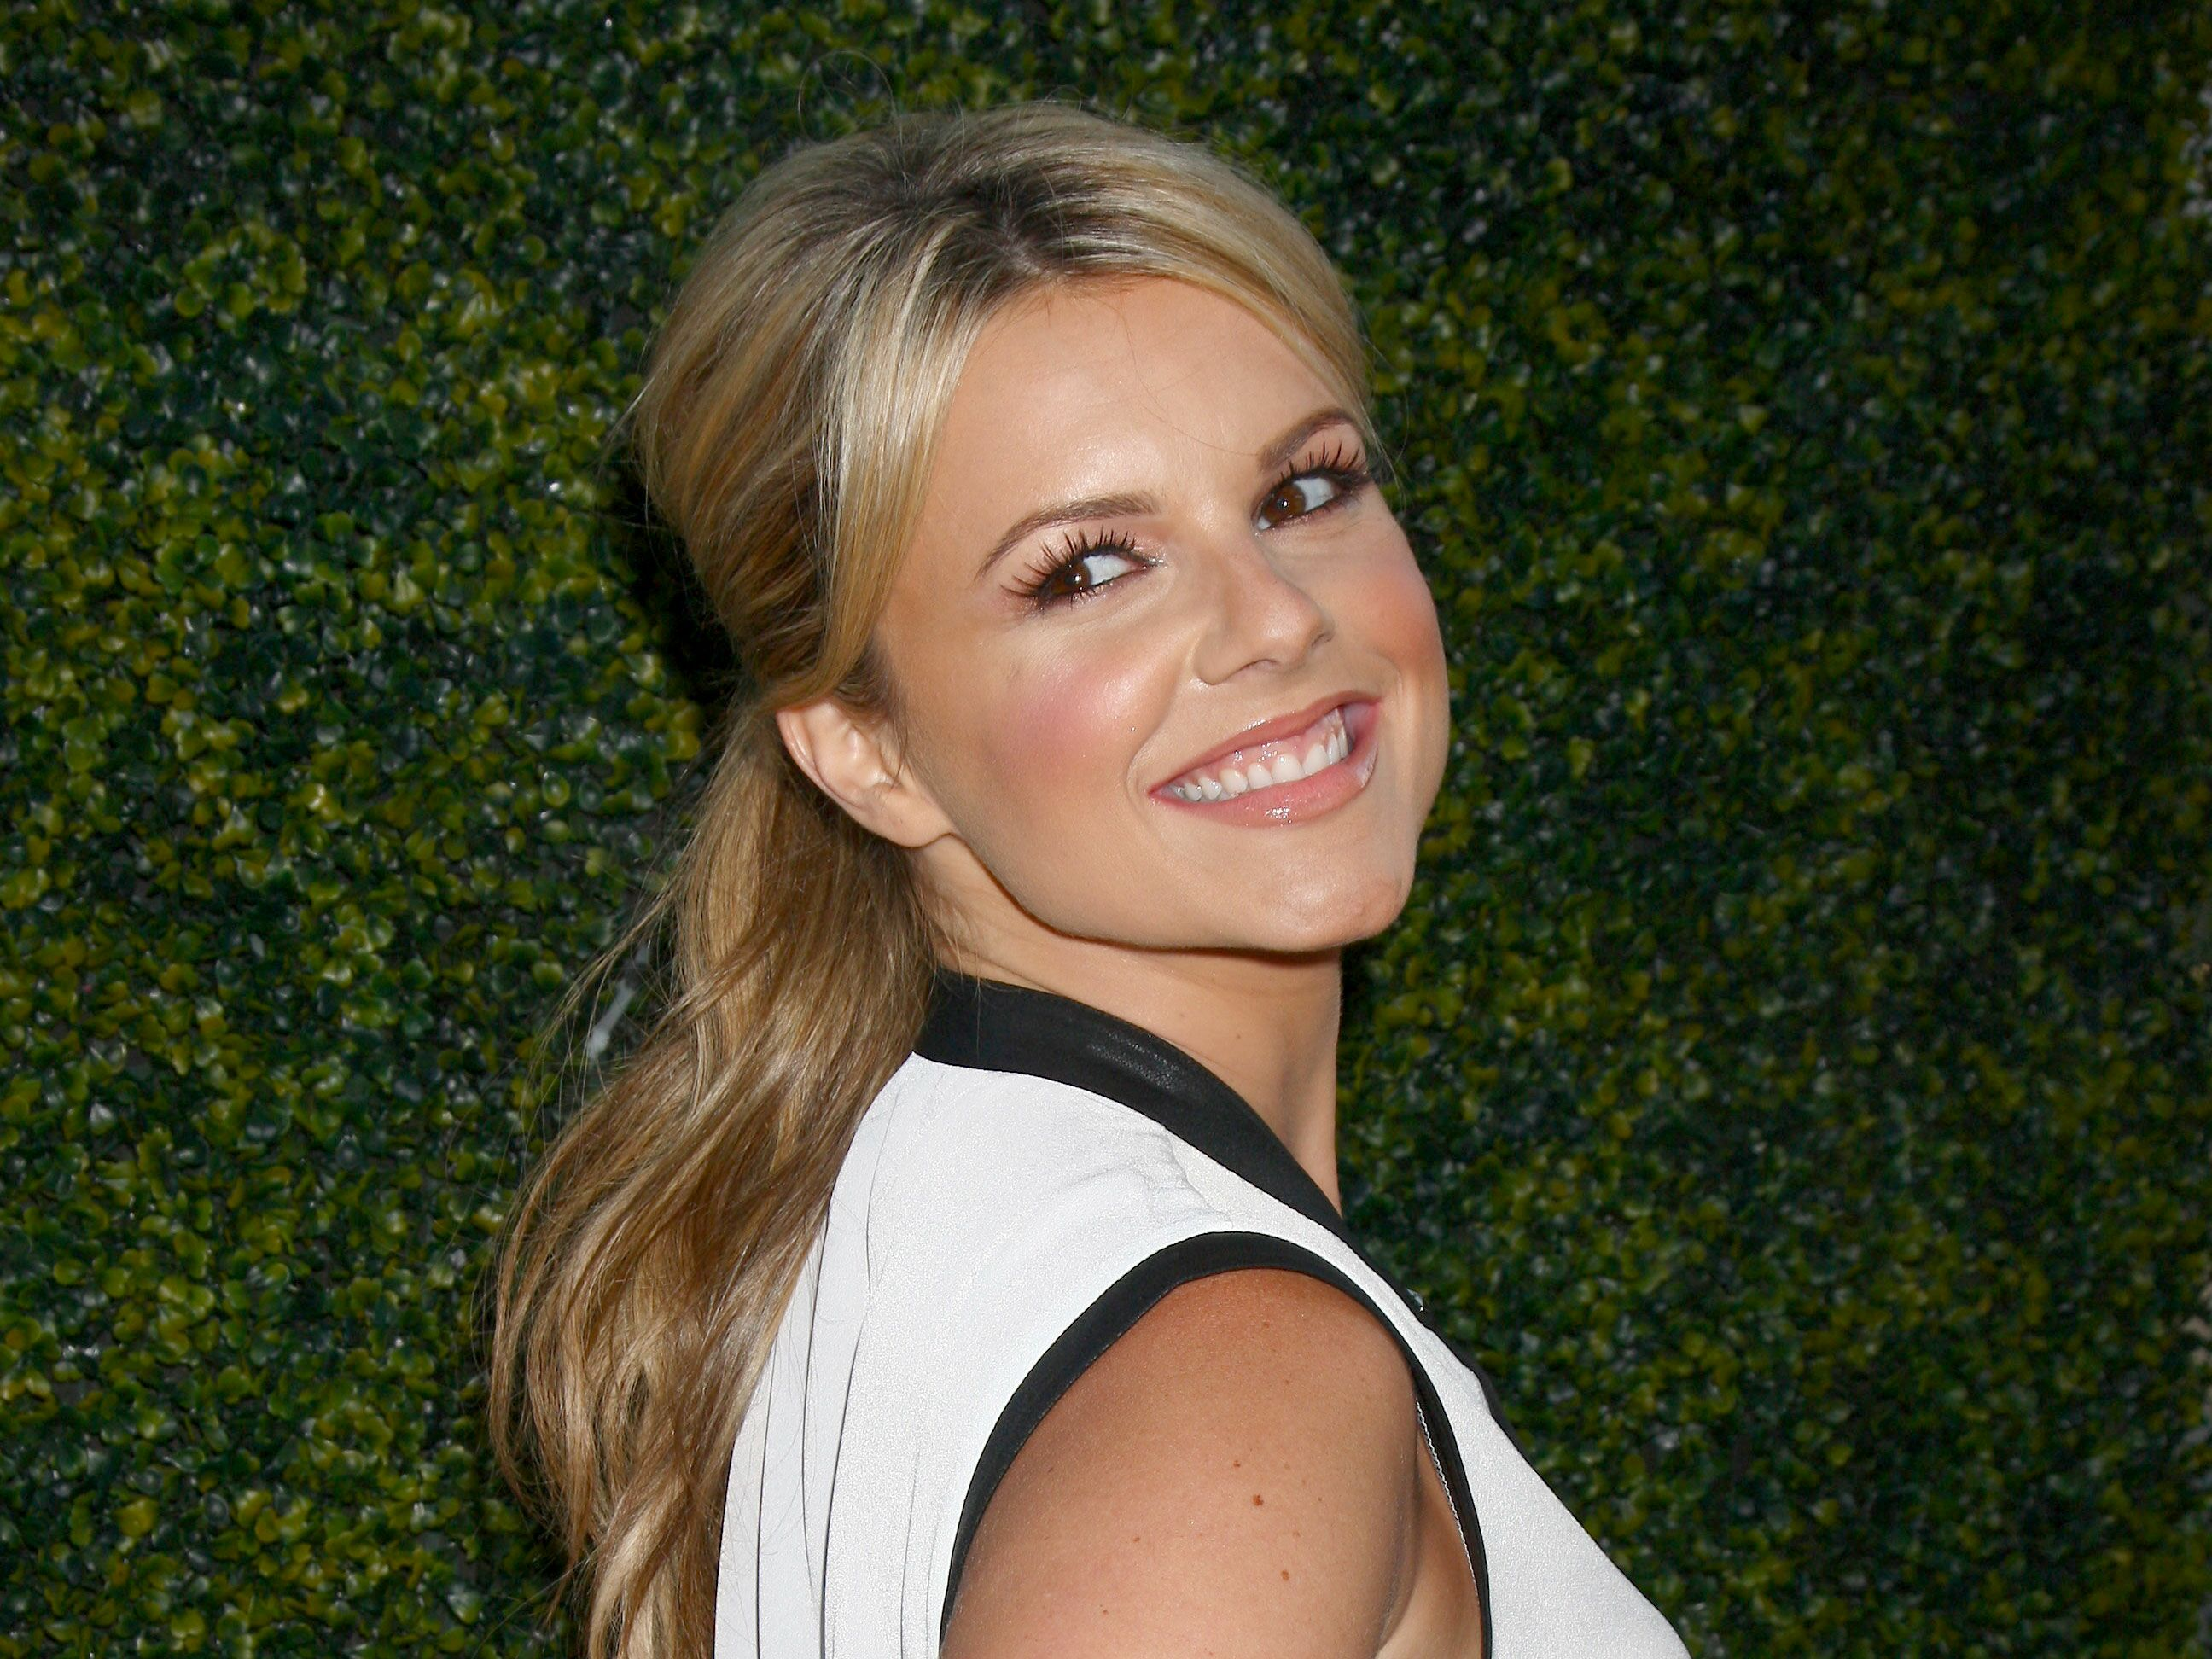 Ali Fedotowsky shows off her engagement ring